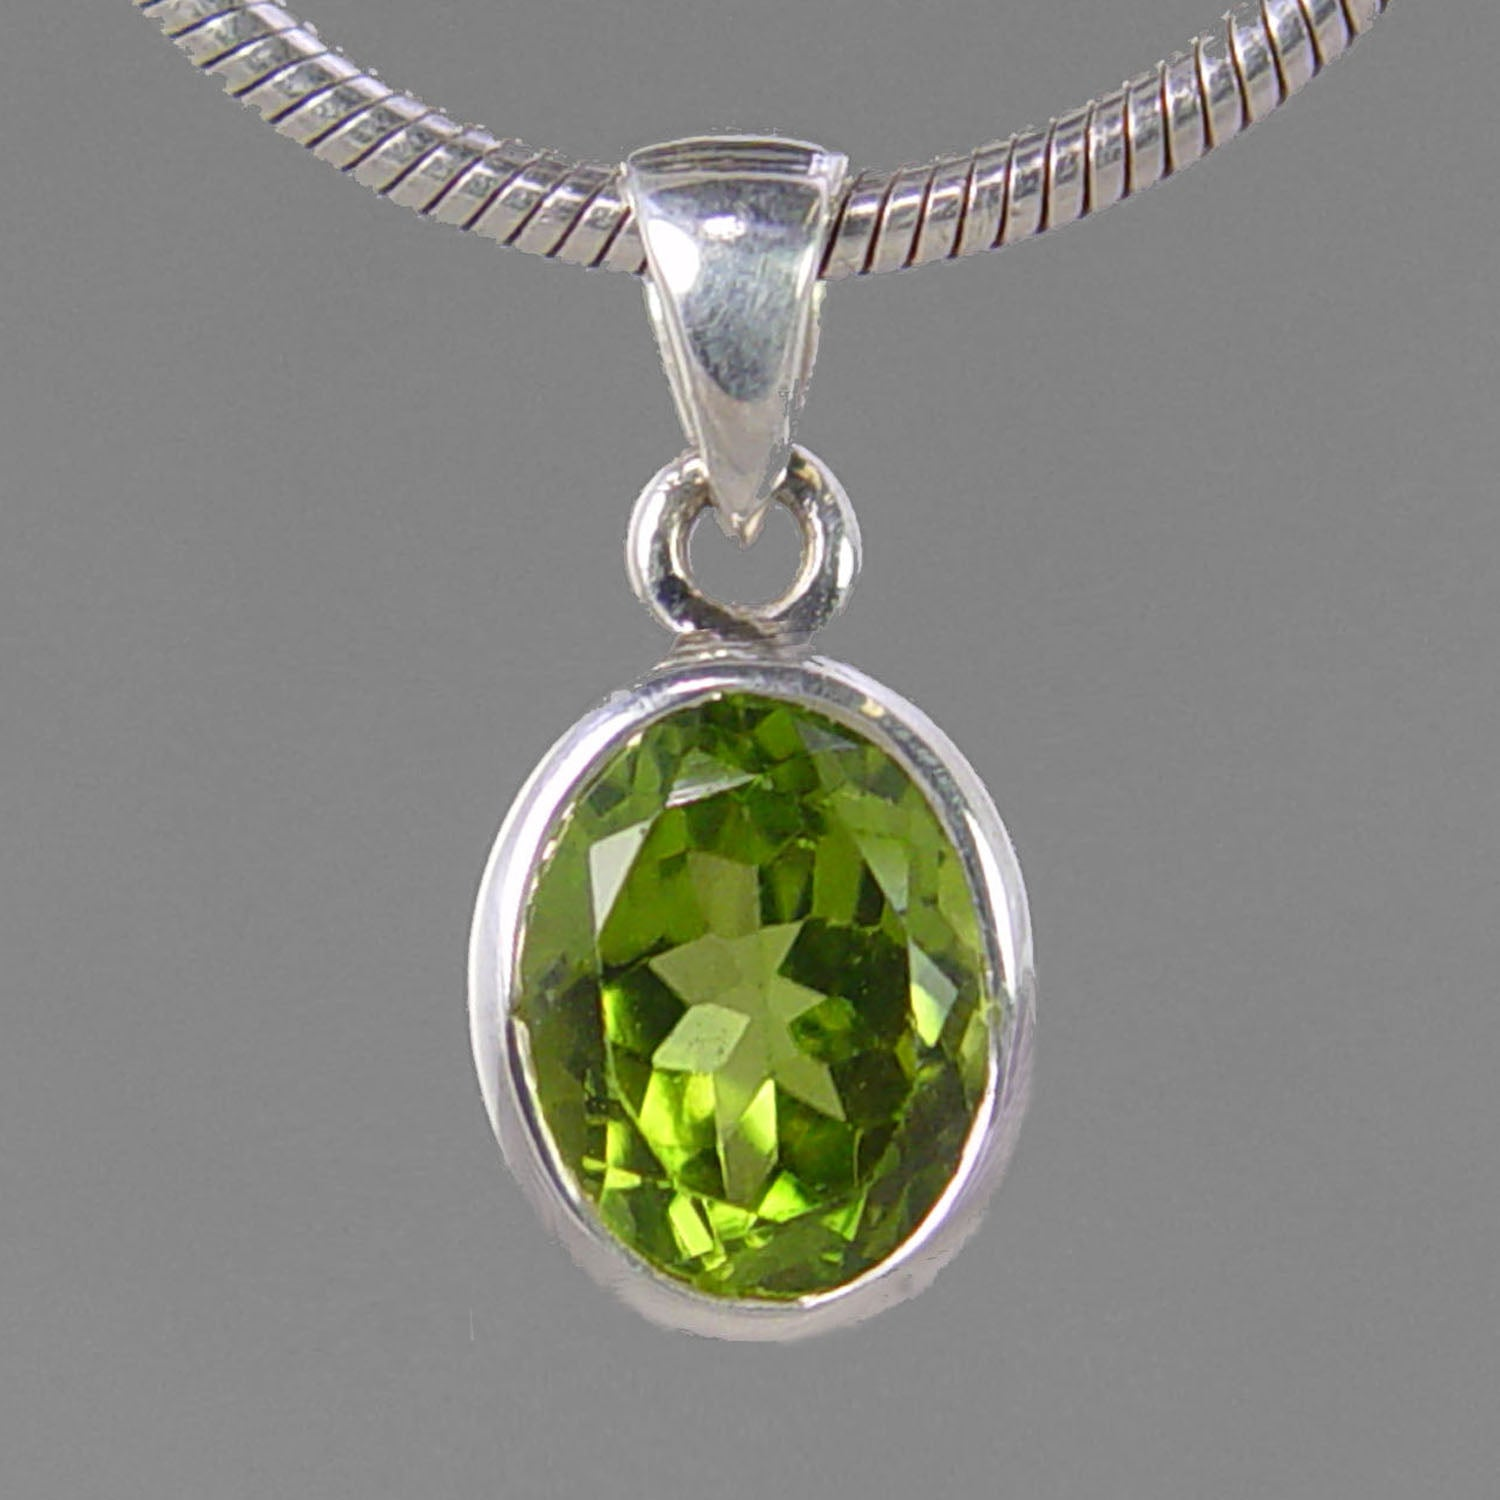 Peridot 4.35 ct Faceted Oval Bezel Set Sterling Silver Pendant